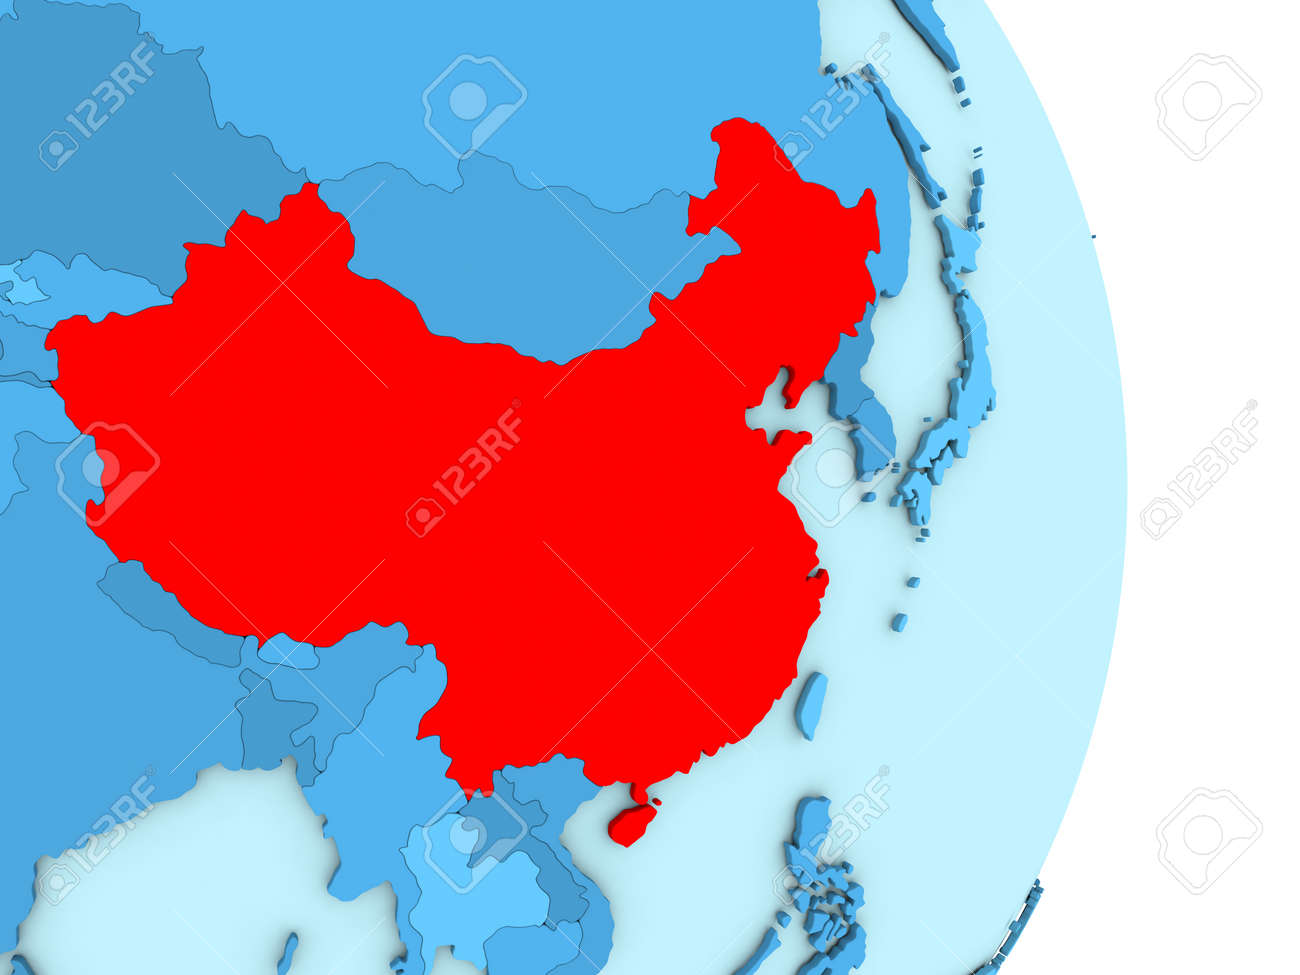 Countries Bordering China Map.Map Of China On Blue Globe With Visible Country Borders And